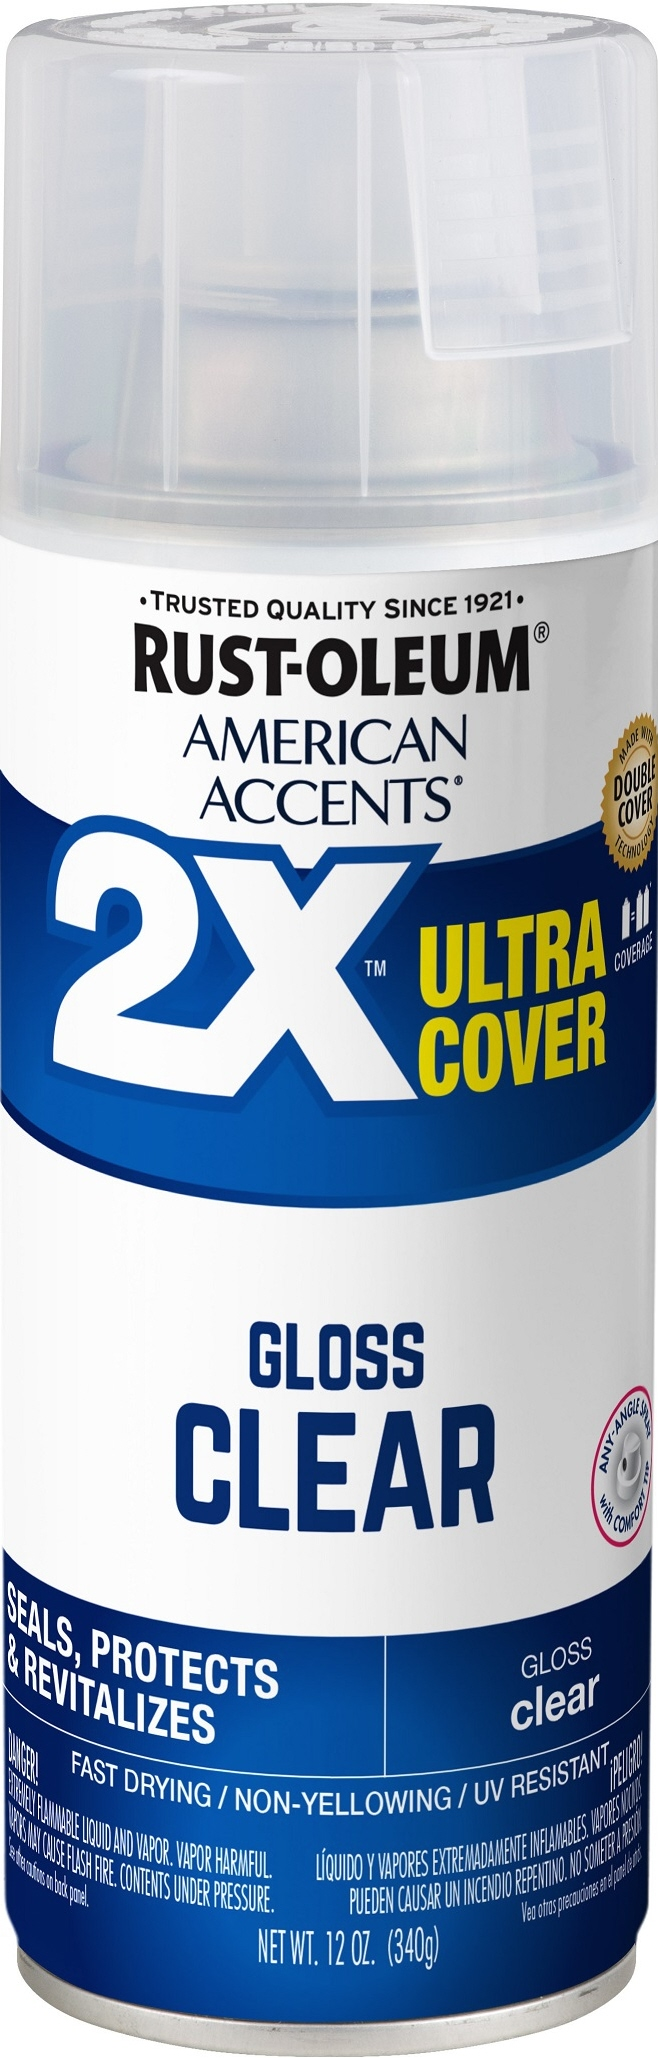 (3 Pack) Rust-Oleum American Accents Ultra Cover 2X Gloss Clear Spray Paint and Primer in 1, 12 oz